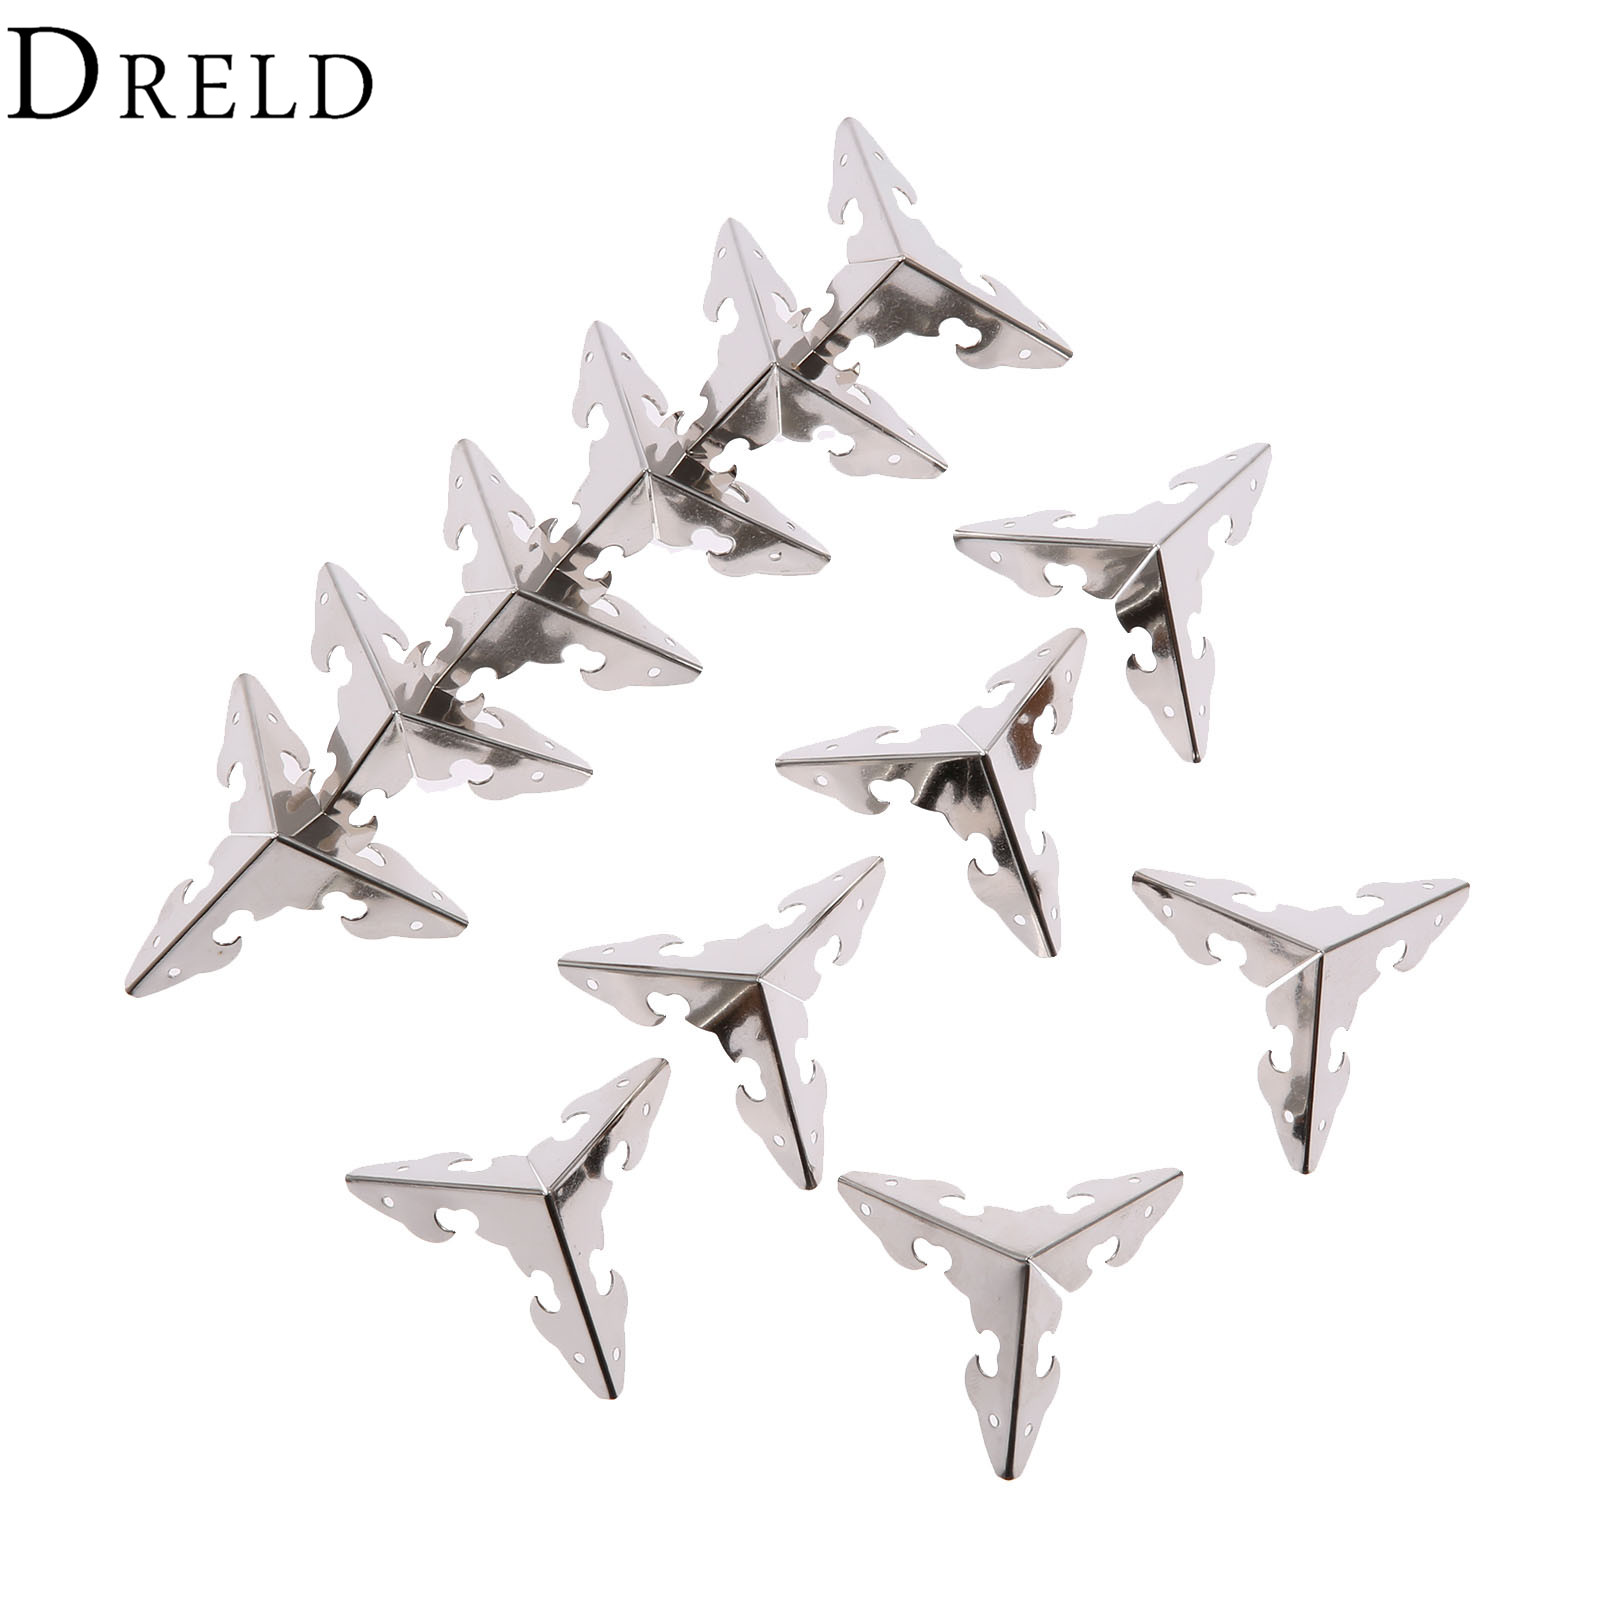 DRELD 12Pcs 30mm Antique Silver Wood Box Feet Leg Corner Protector Guard Metal Crafts Decorative Bracket For Furniture Hardware